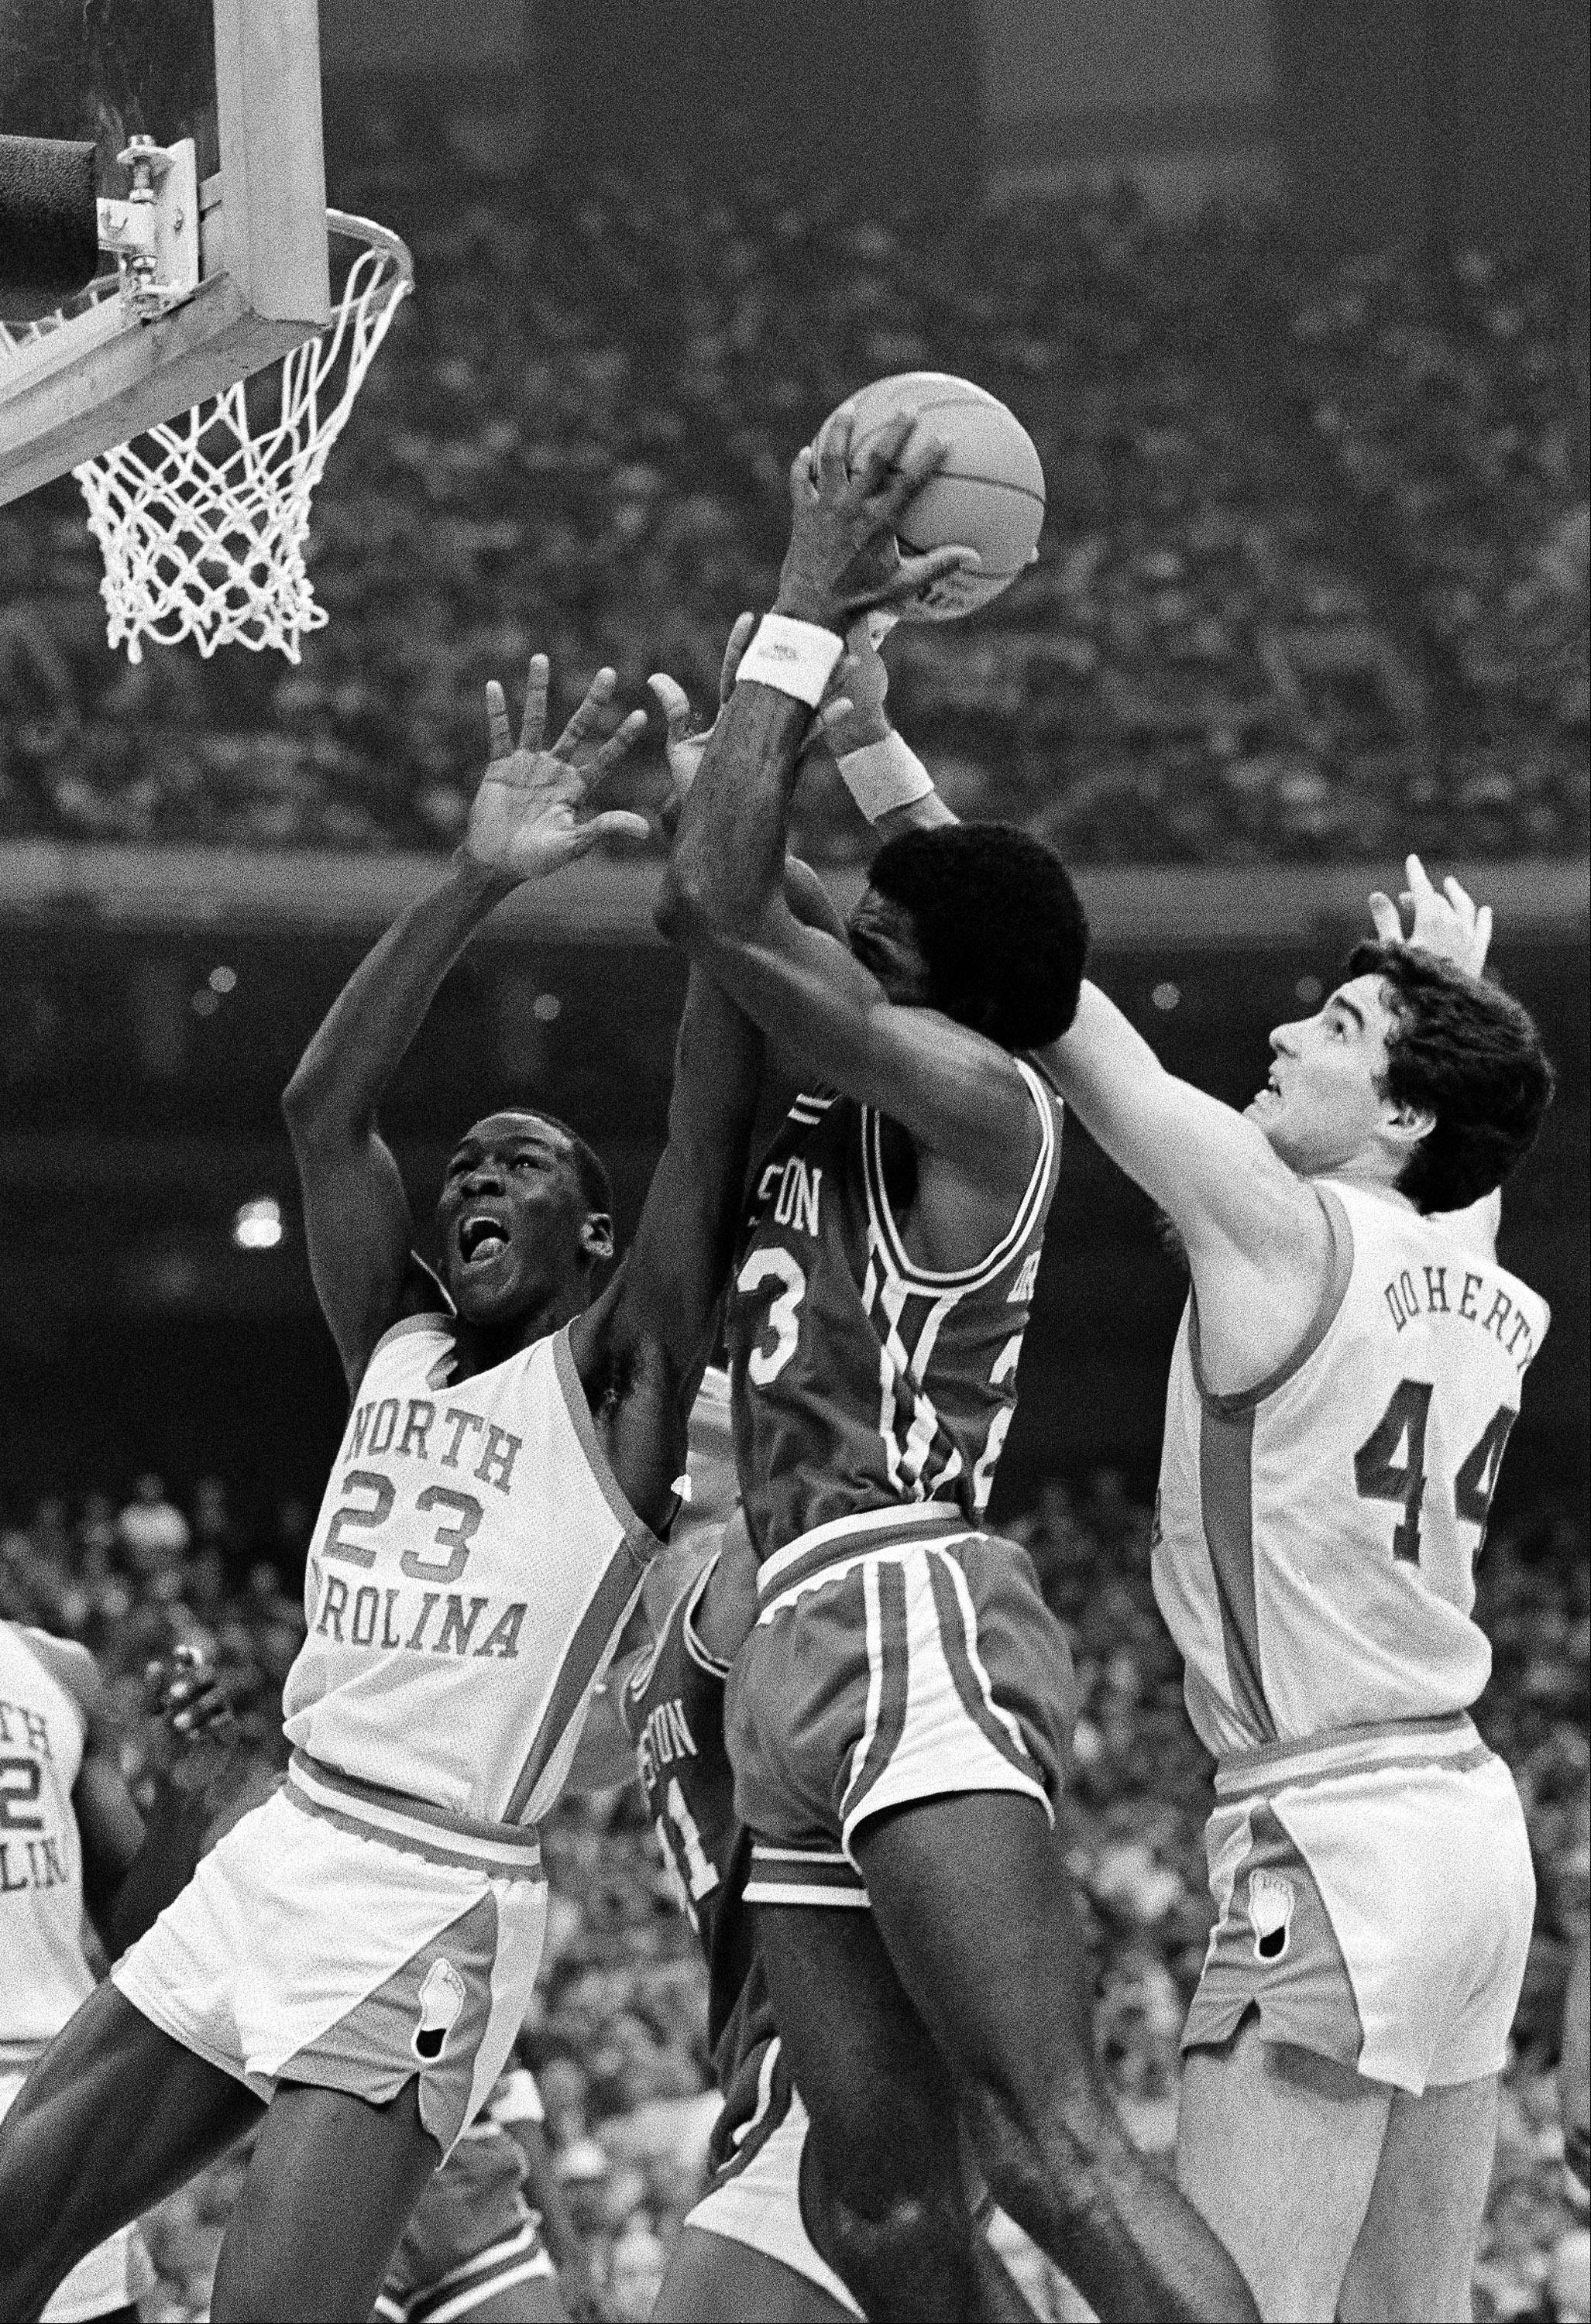 University of Houston's Clyde Drexler, center, grabs the rebound as University of North Carolina players Michael Jordan (23) and Matt Doherty (44) get in the action during NCAA semi-final play in New Orleans, March 28, 1982. North Carolina won, 68-63 and will meet Georgetown University in final action Monday night.